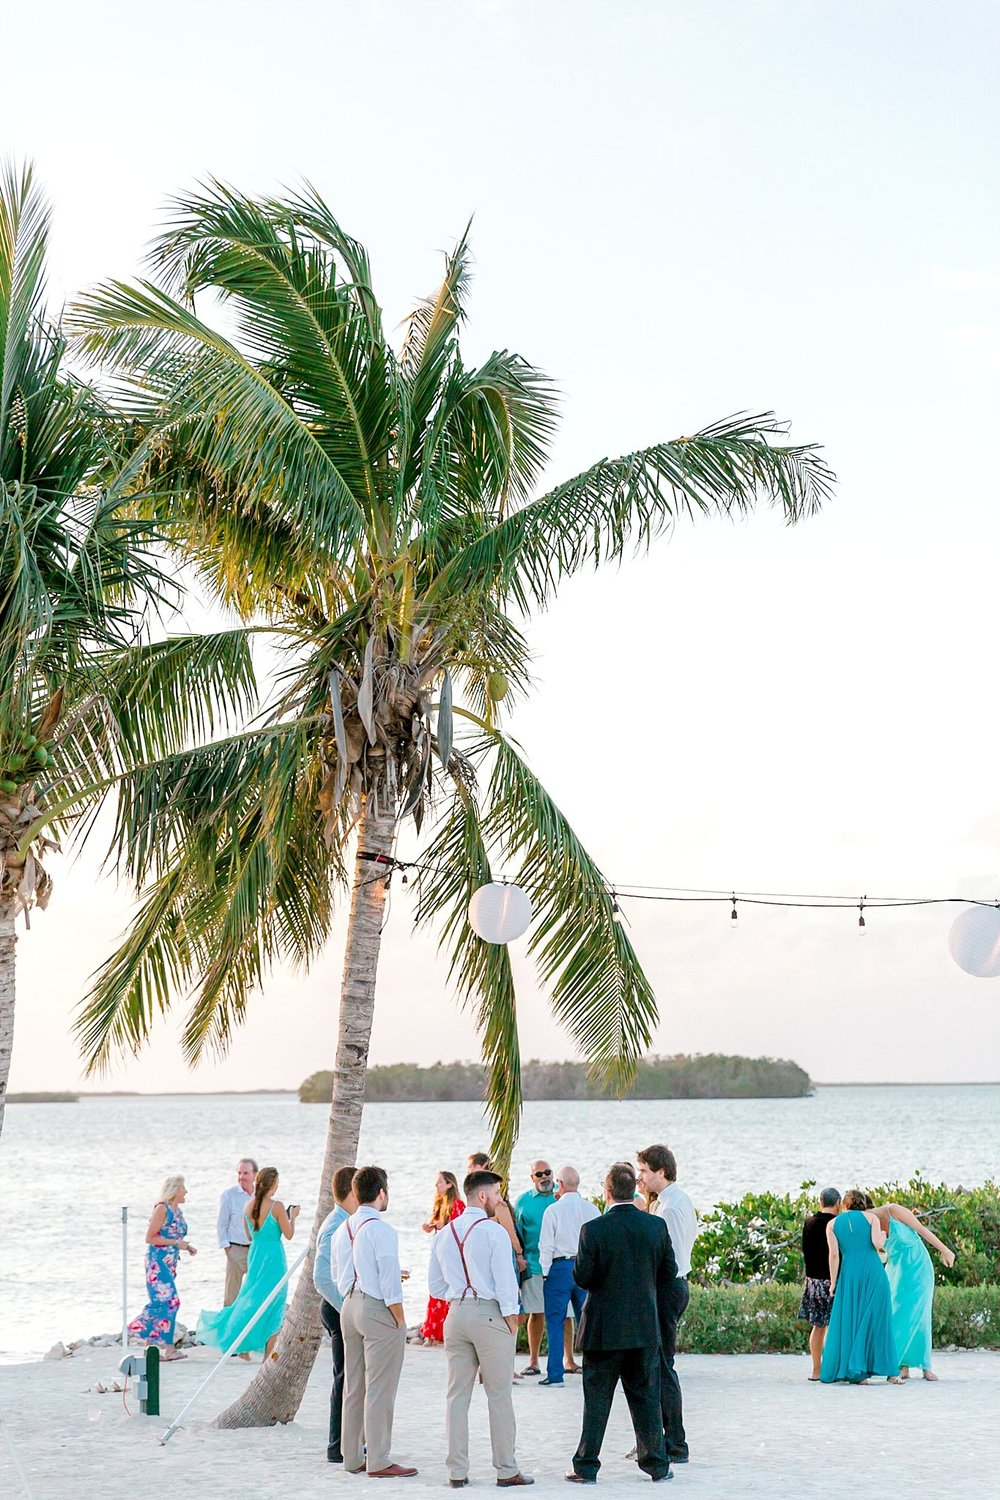 Magdalena Studios Key Largo Destination Wedding Photographer Tropical Island Florida Wedding Miami Vizcaya Gardens Romantic Destination Dreamy Film Wedding Photographer72.jpg